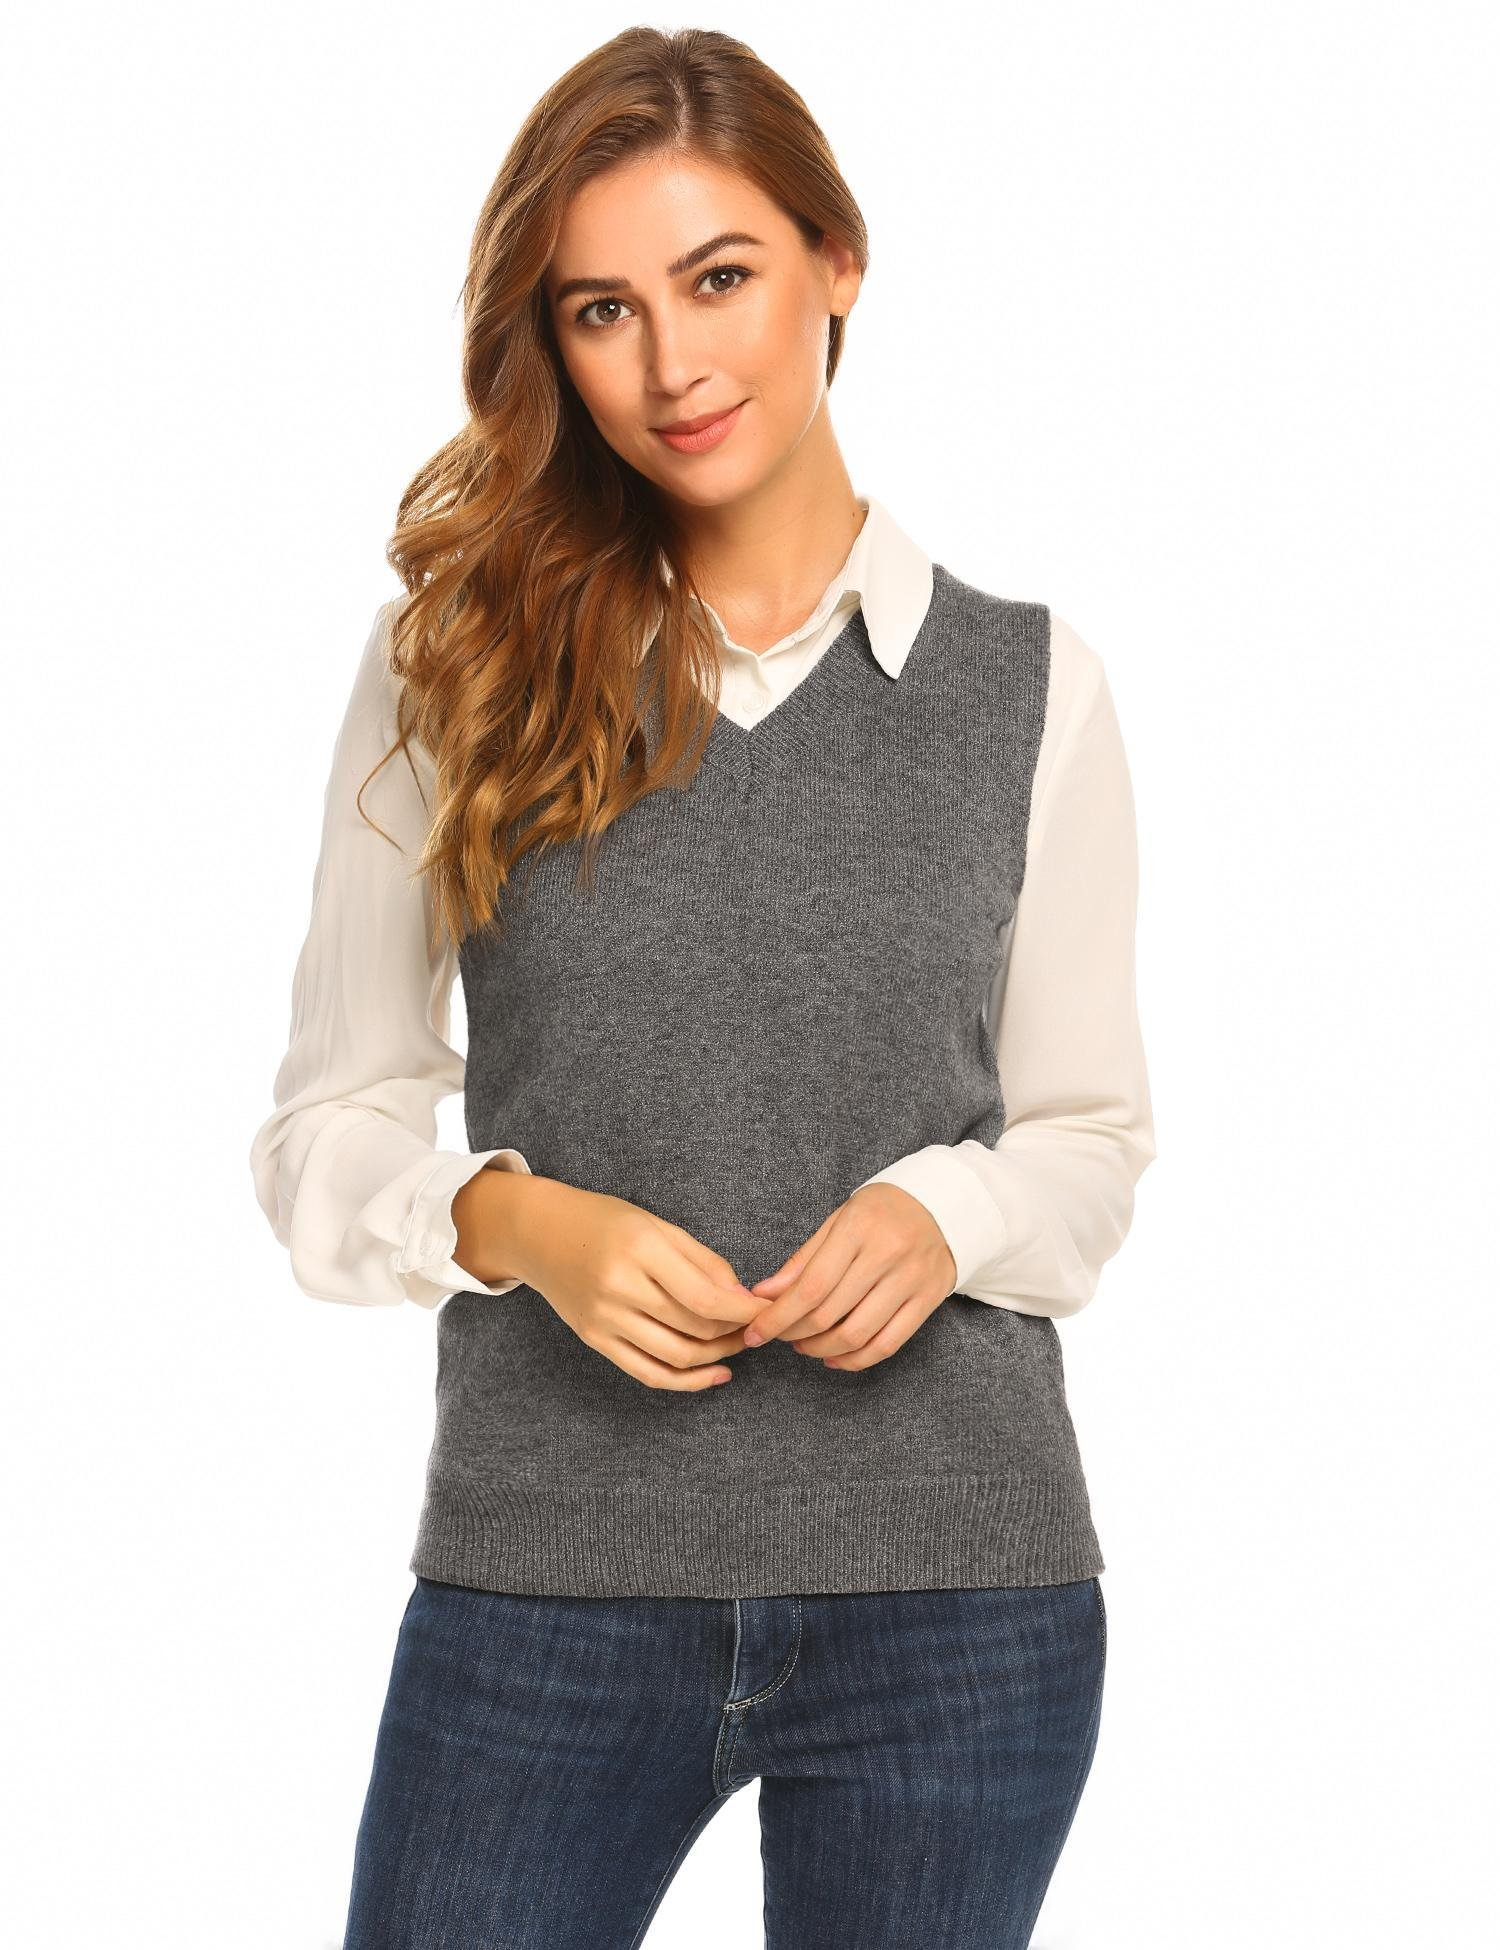 Bifast Women's Short Sleeve Knitted Pullover Loose V Neck Sweater Casual Jumper Tops Gray,L